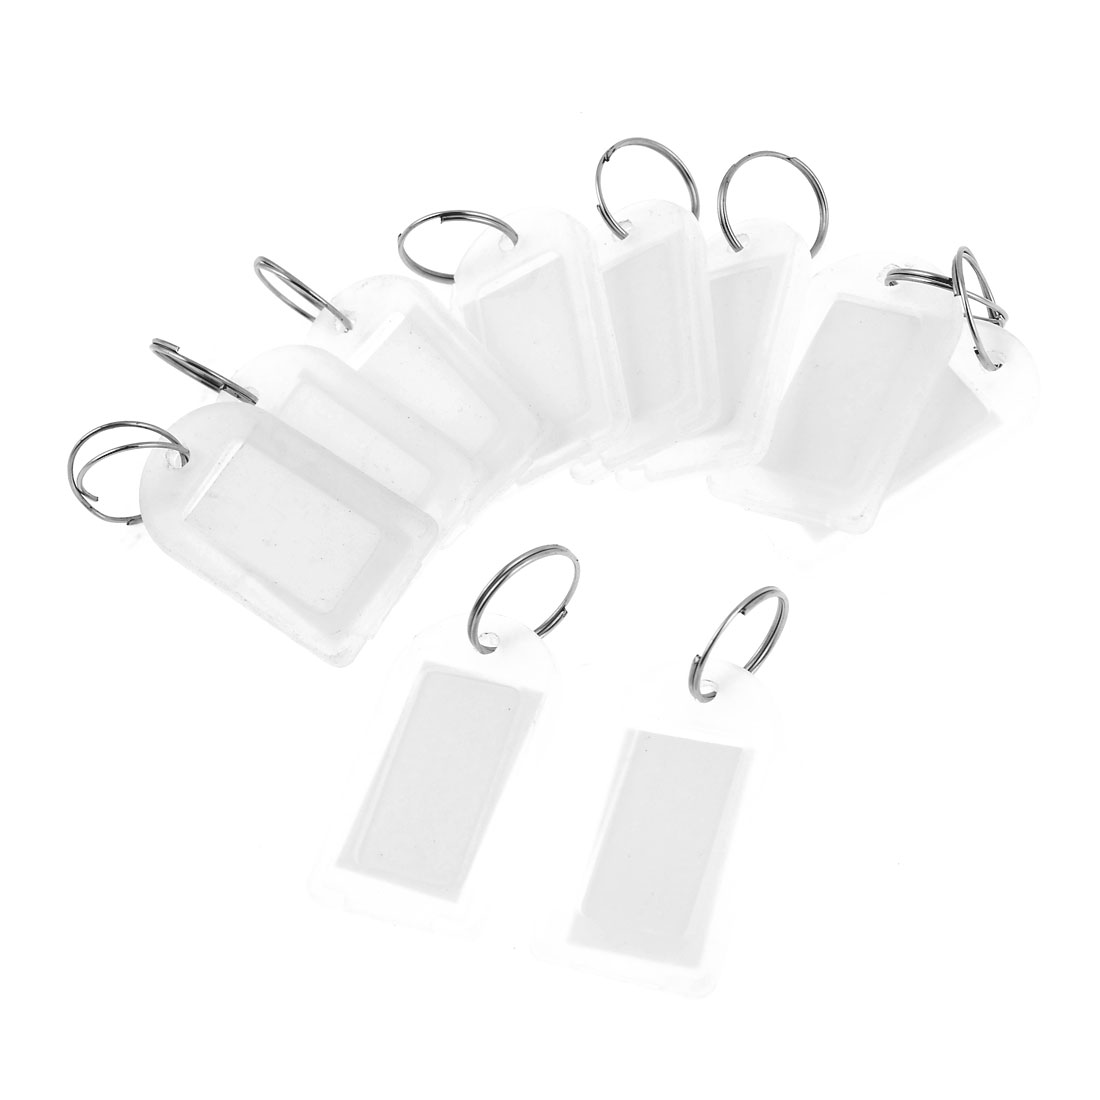 Travellers Plastic Name Package Tag Photo Holder w Keyring Clear 1.8 Inch Long 10 Pcs